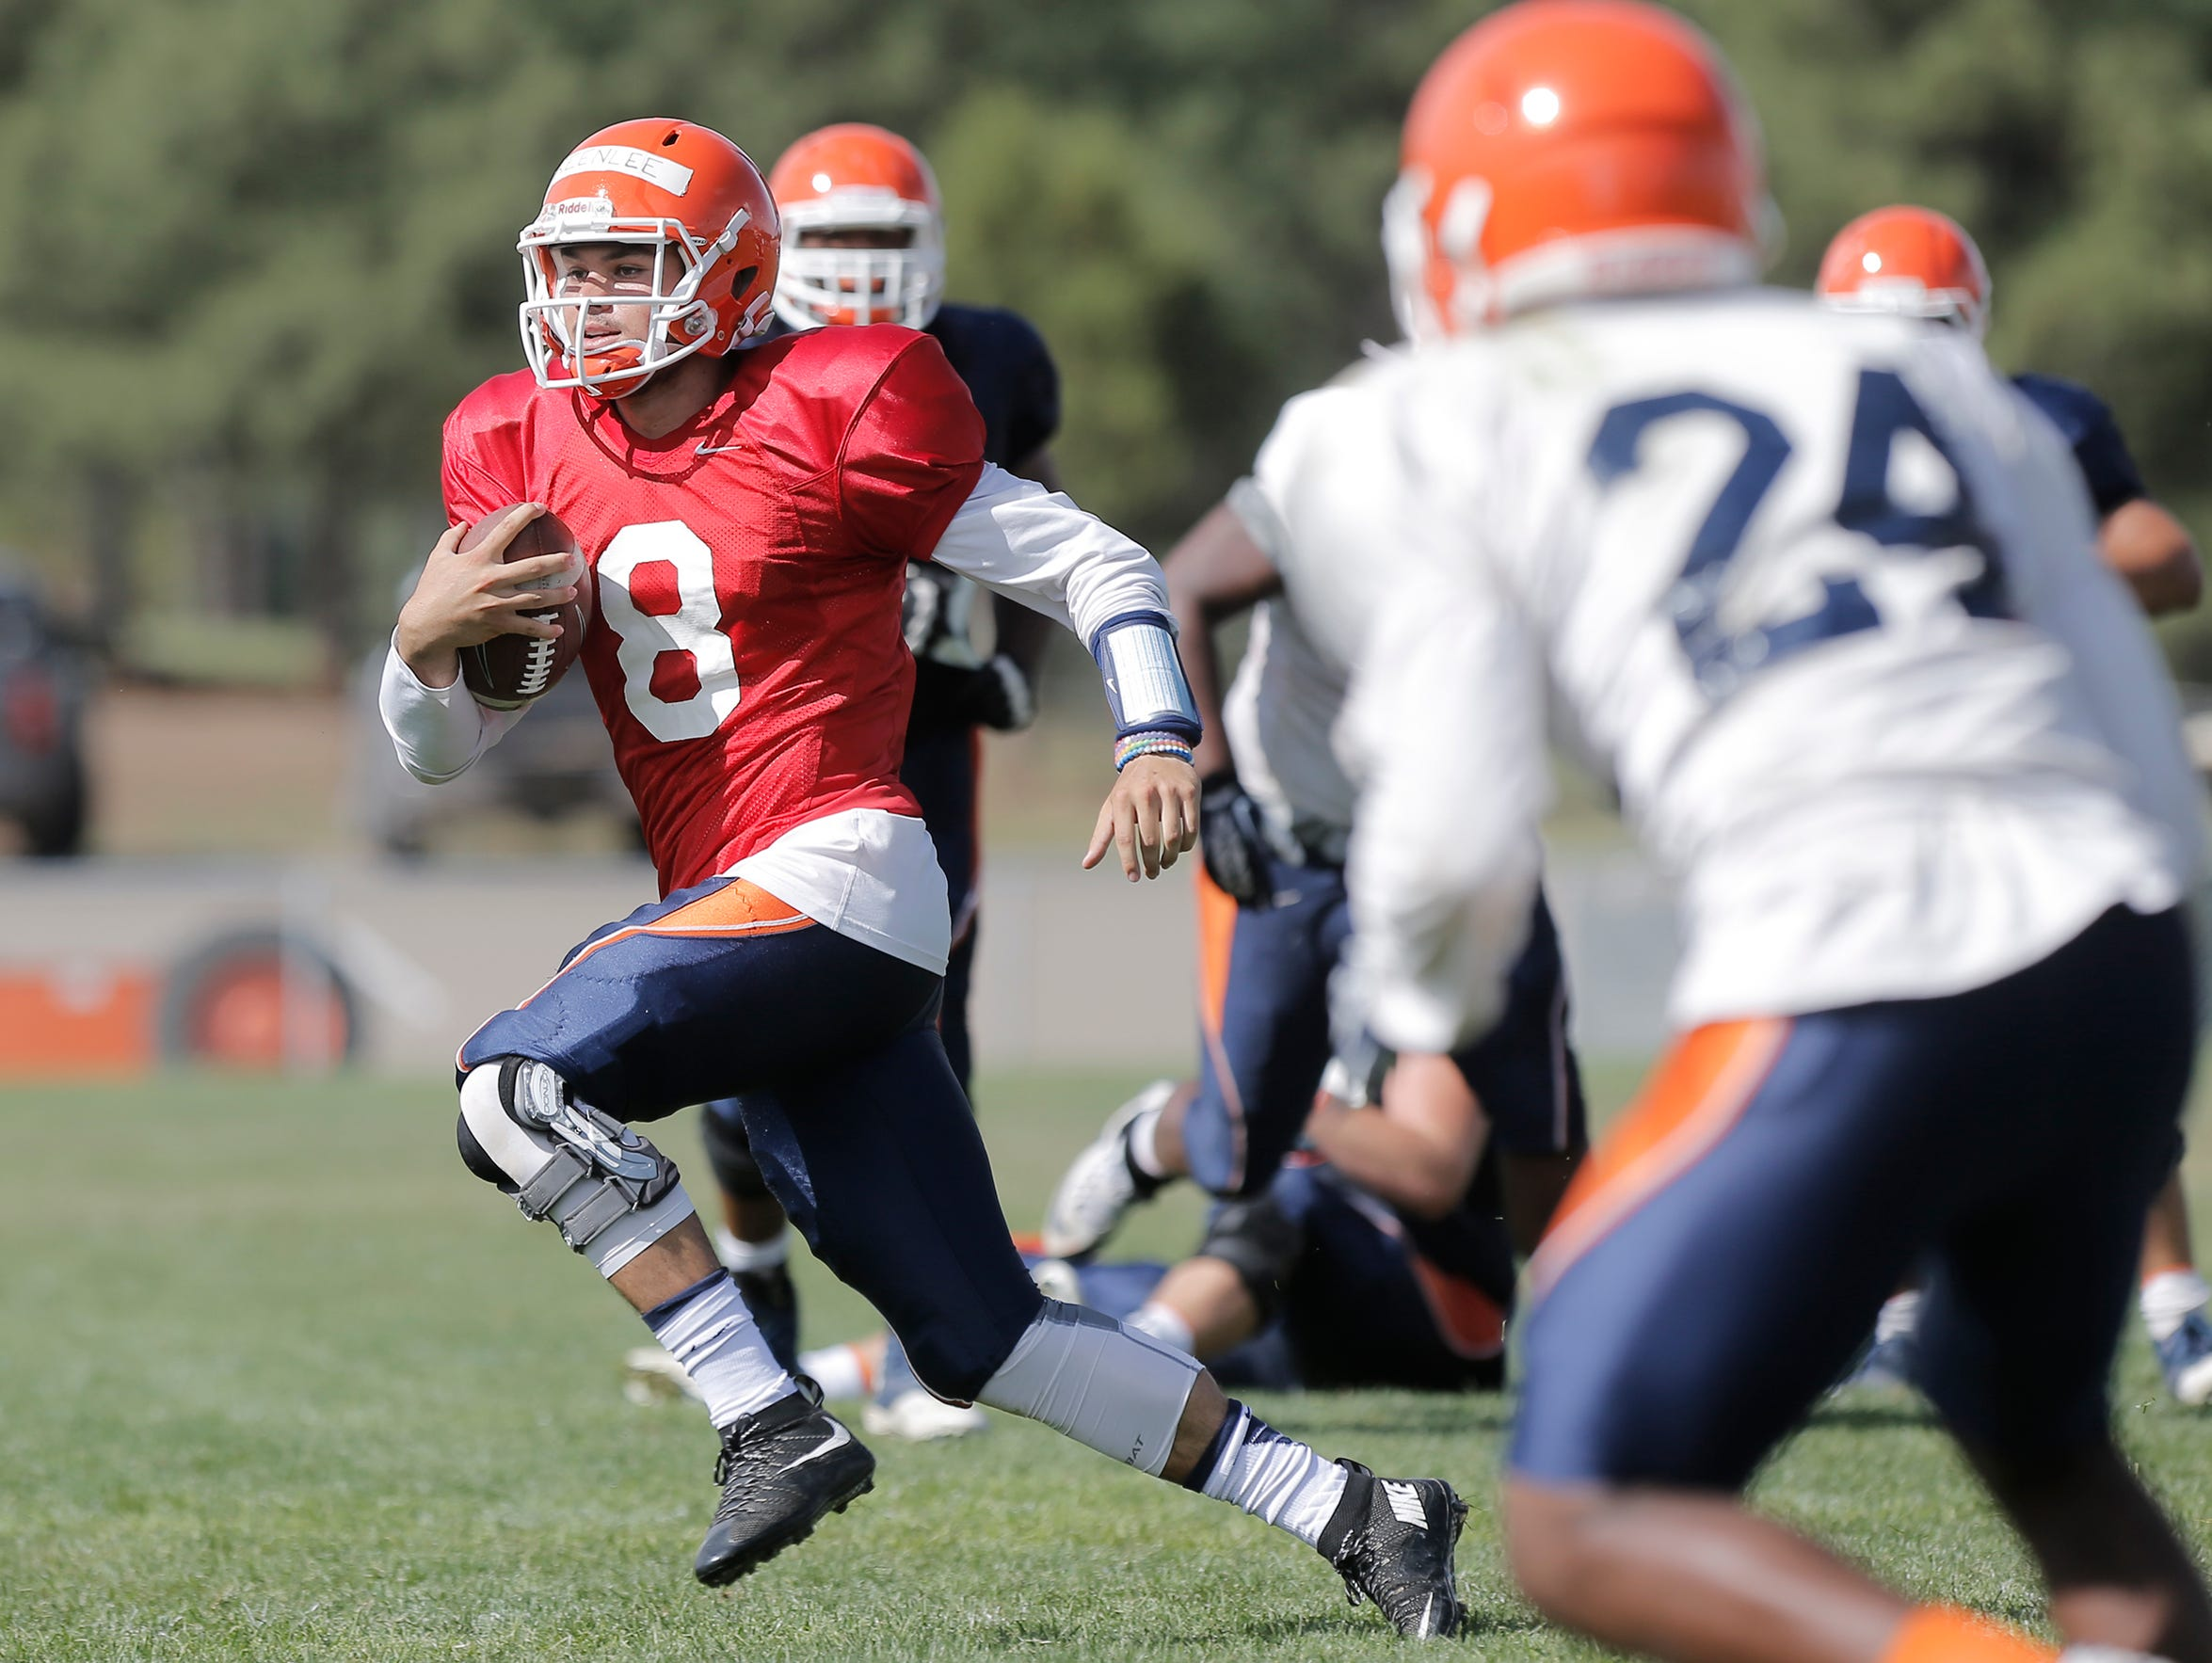 UTEP quarterback Zack Greenlee takes off after not